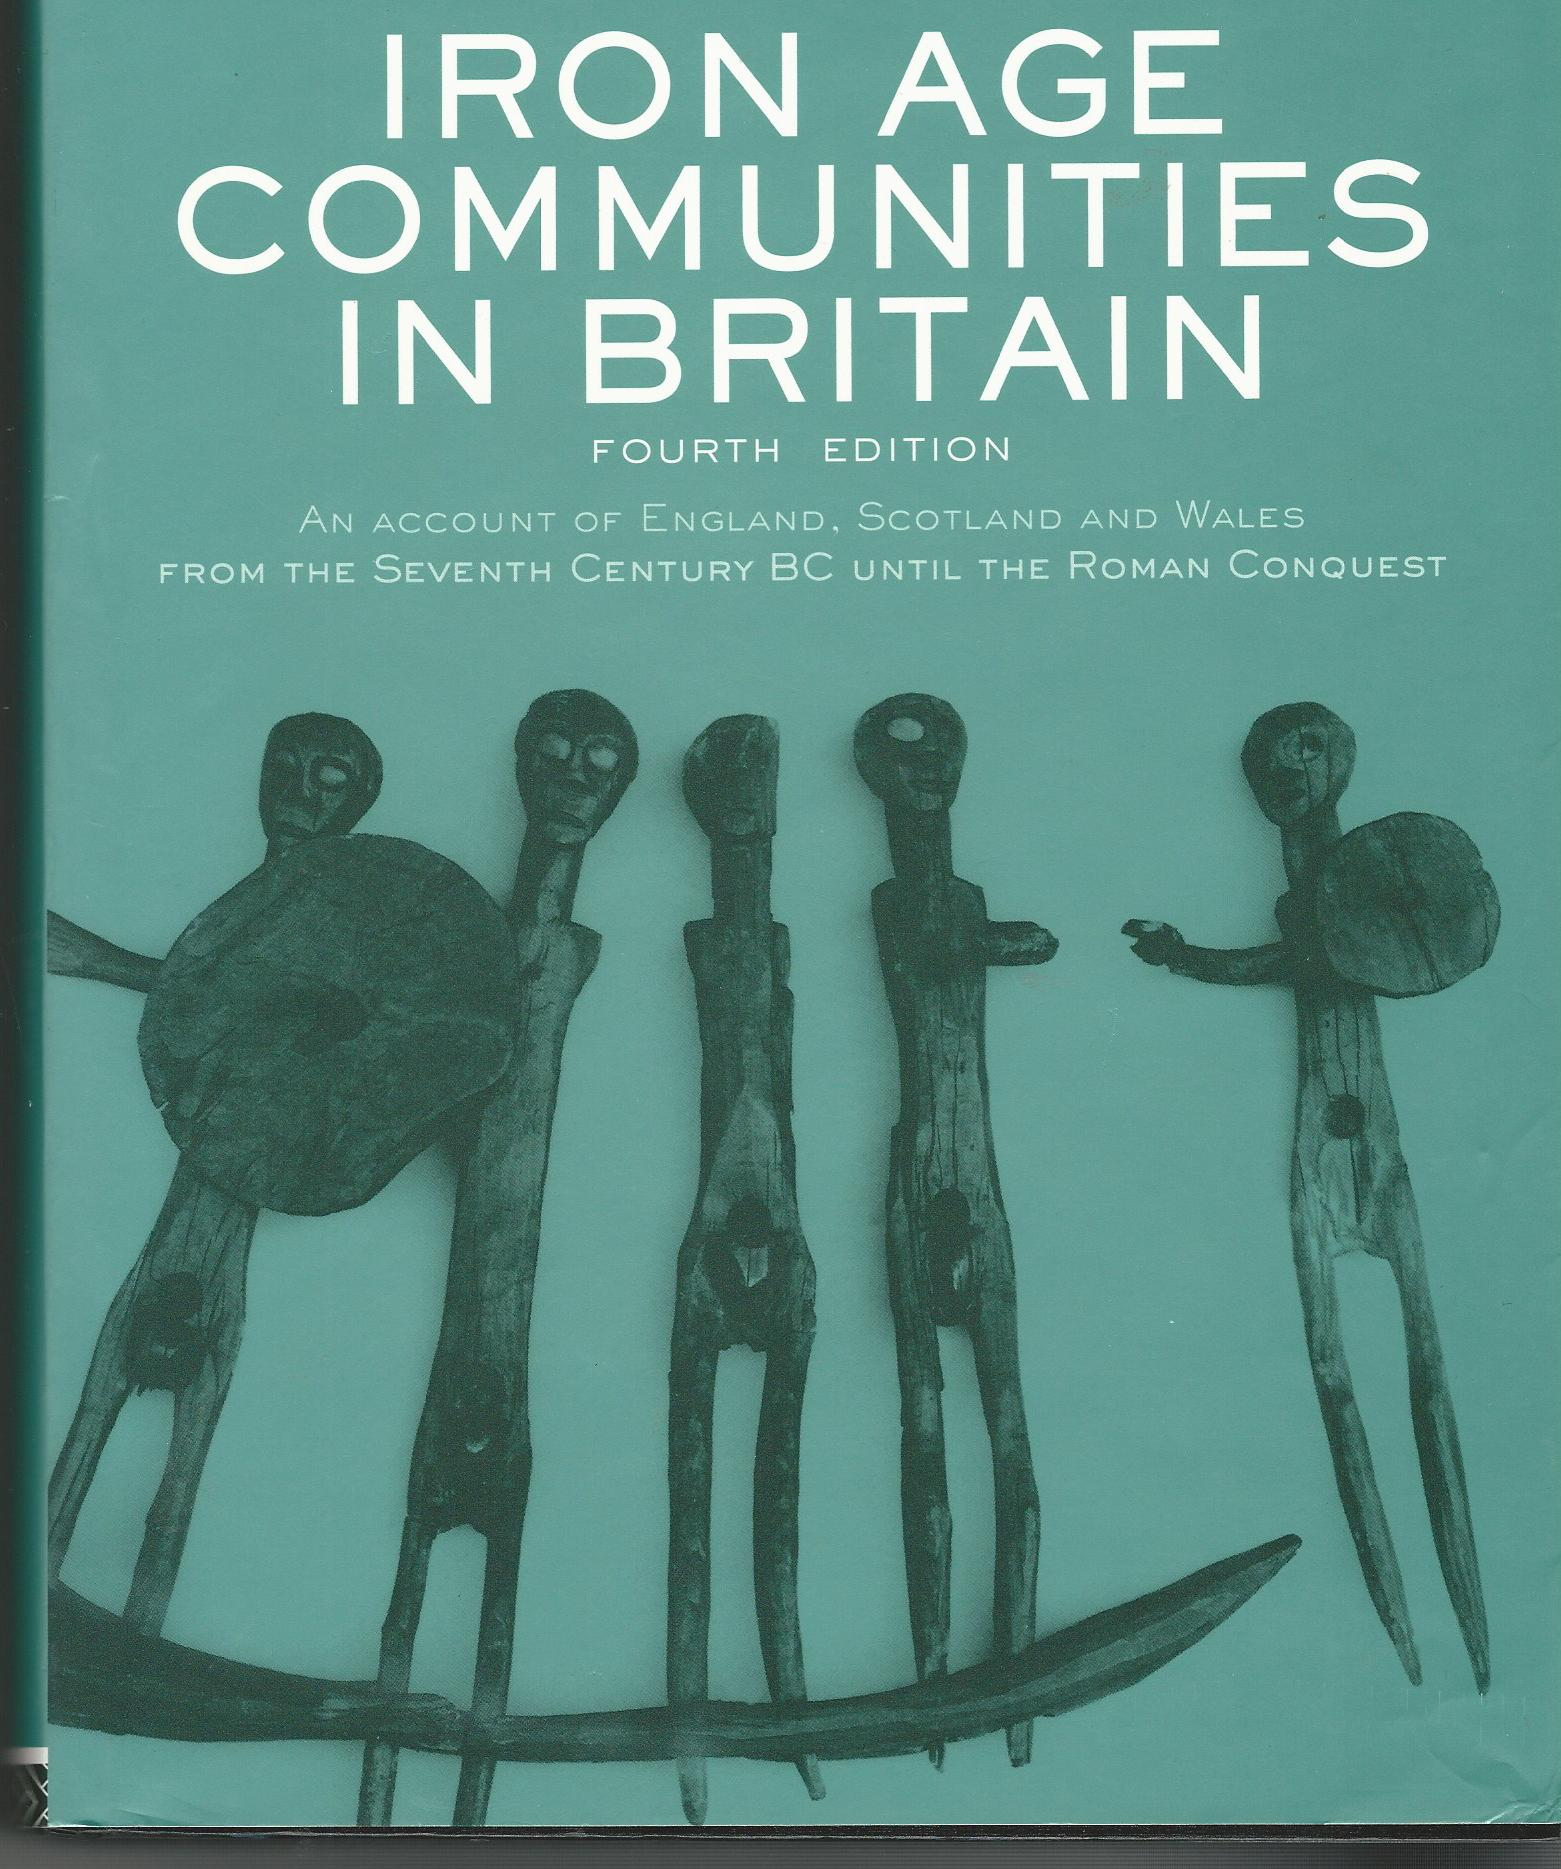 Image for Iron Age Communities in Britain: An Account of England, Scotland and Wales from the Seventh Century BC until the Roman Conquest